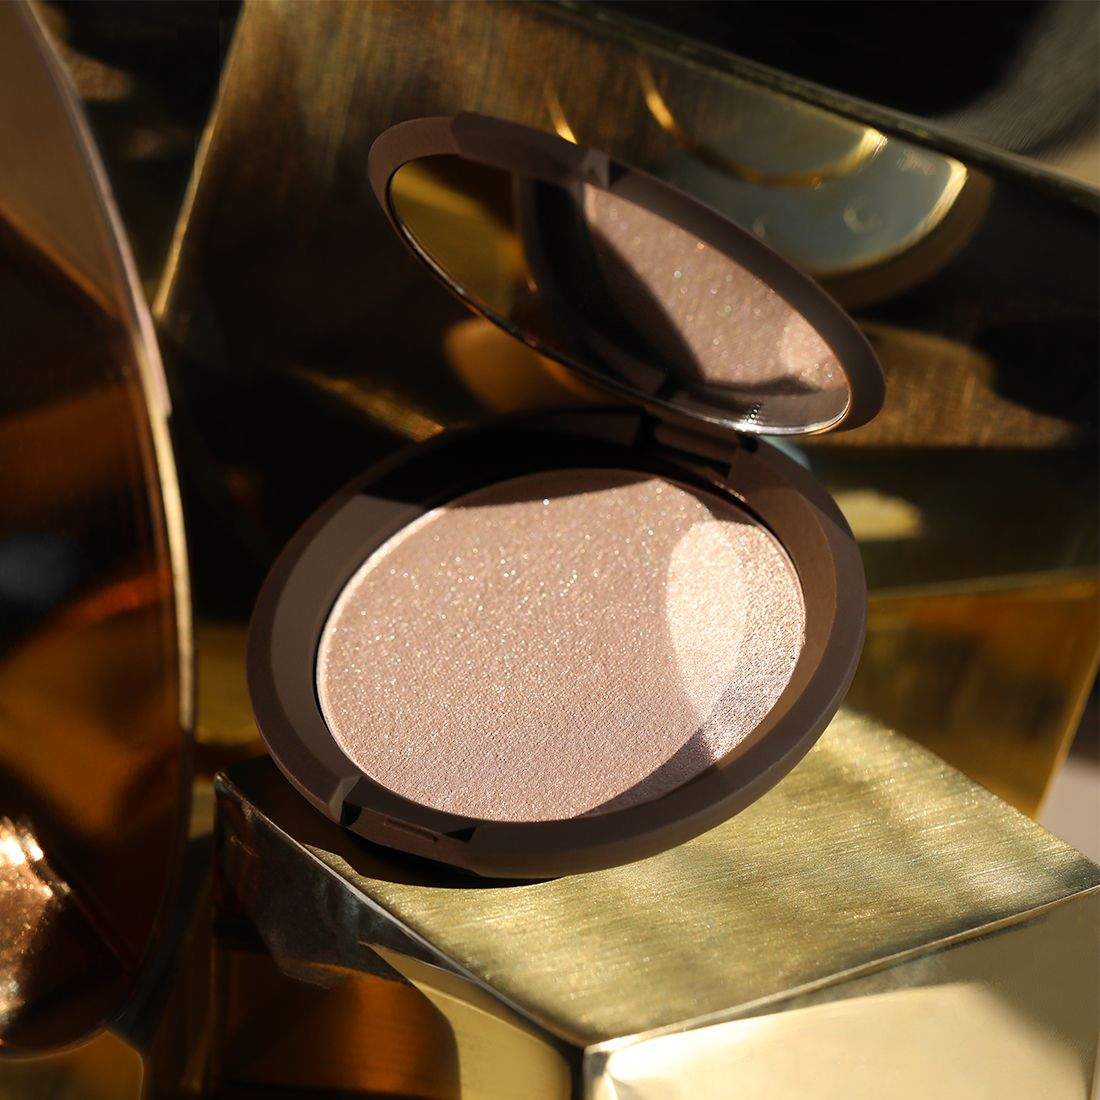 Pin by Nataliiamr on Holiday Becca shimmering skin perfector